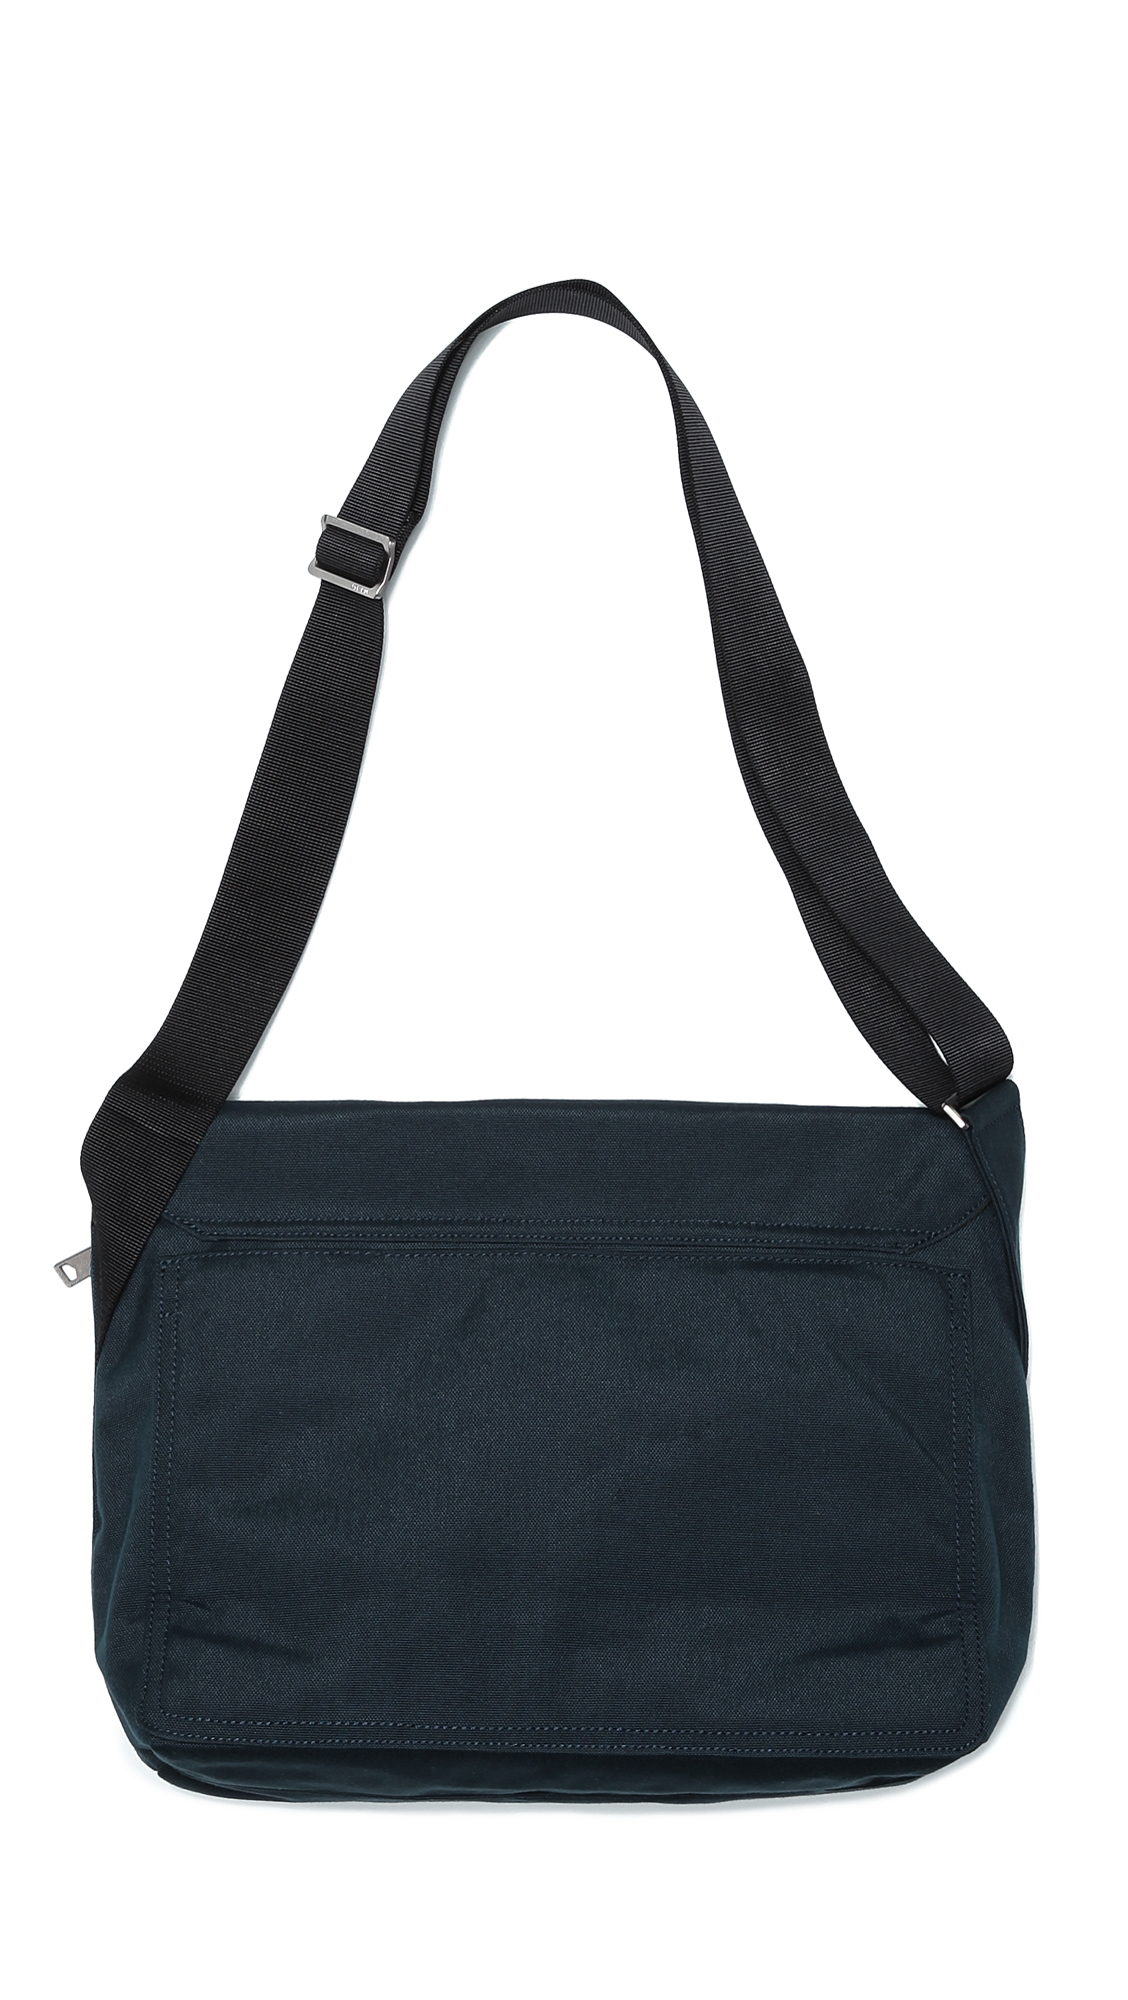 Jack Spade Nylon Canvas Computer Field Bag In Navy Olive Blue For Men Lyst